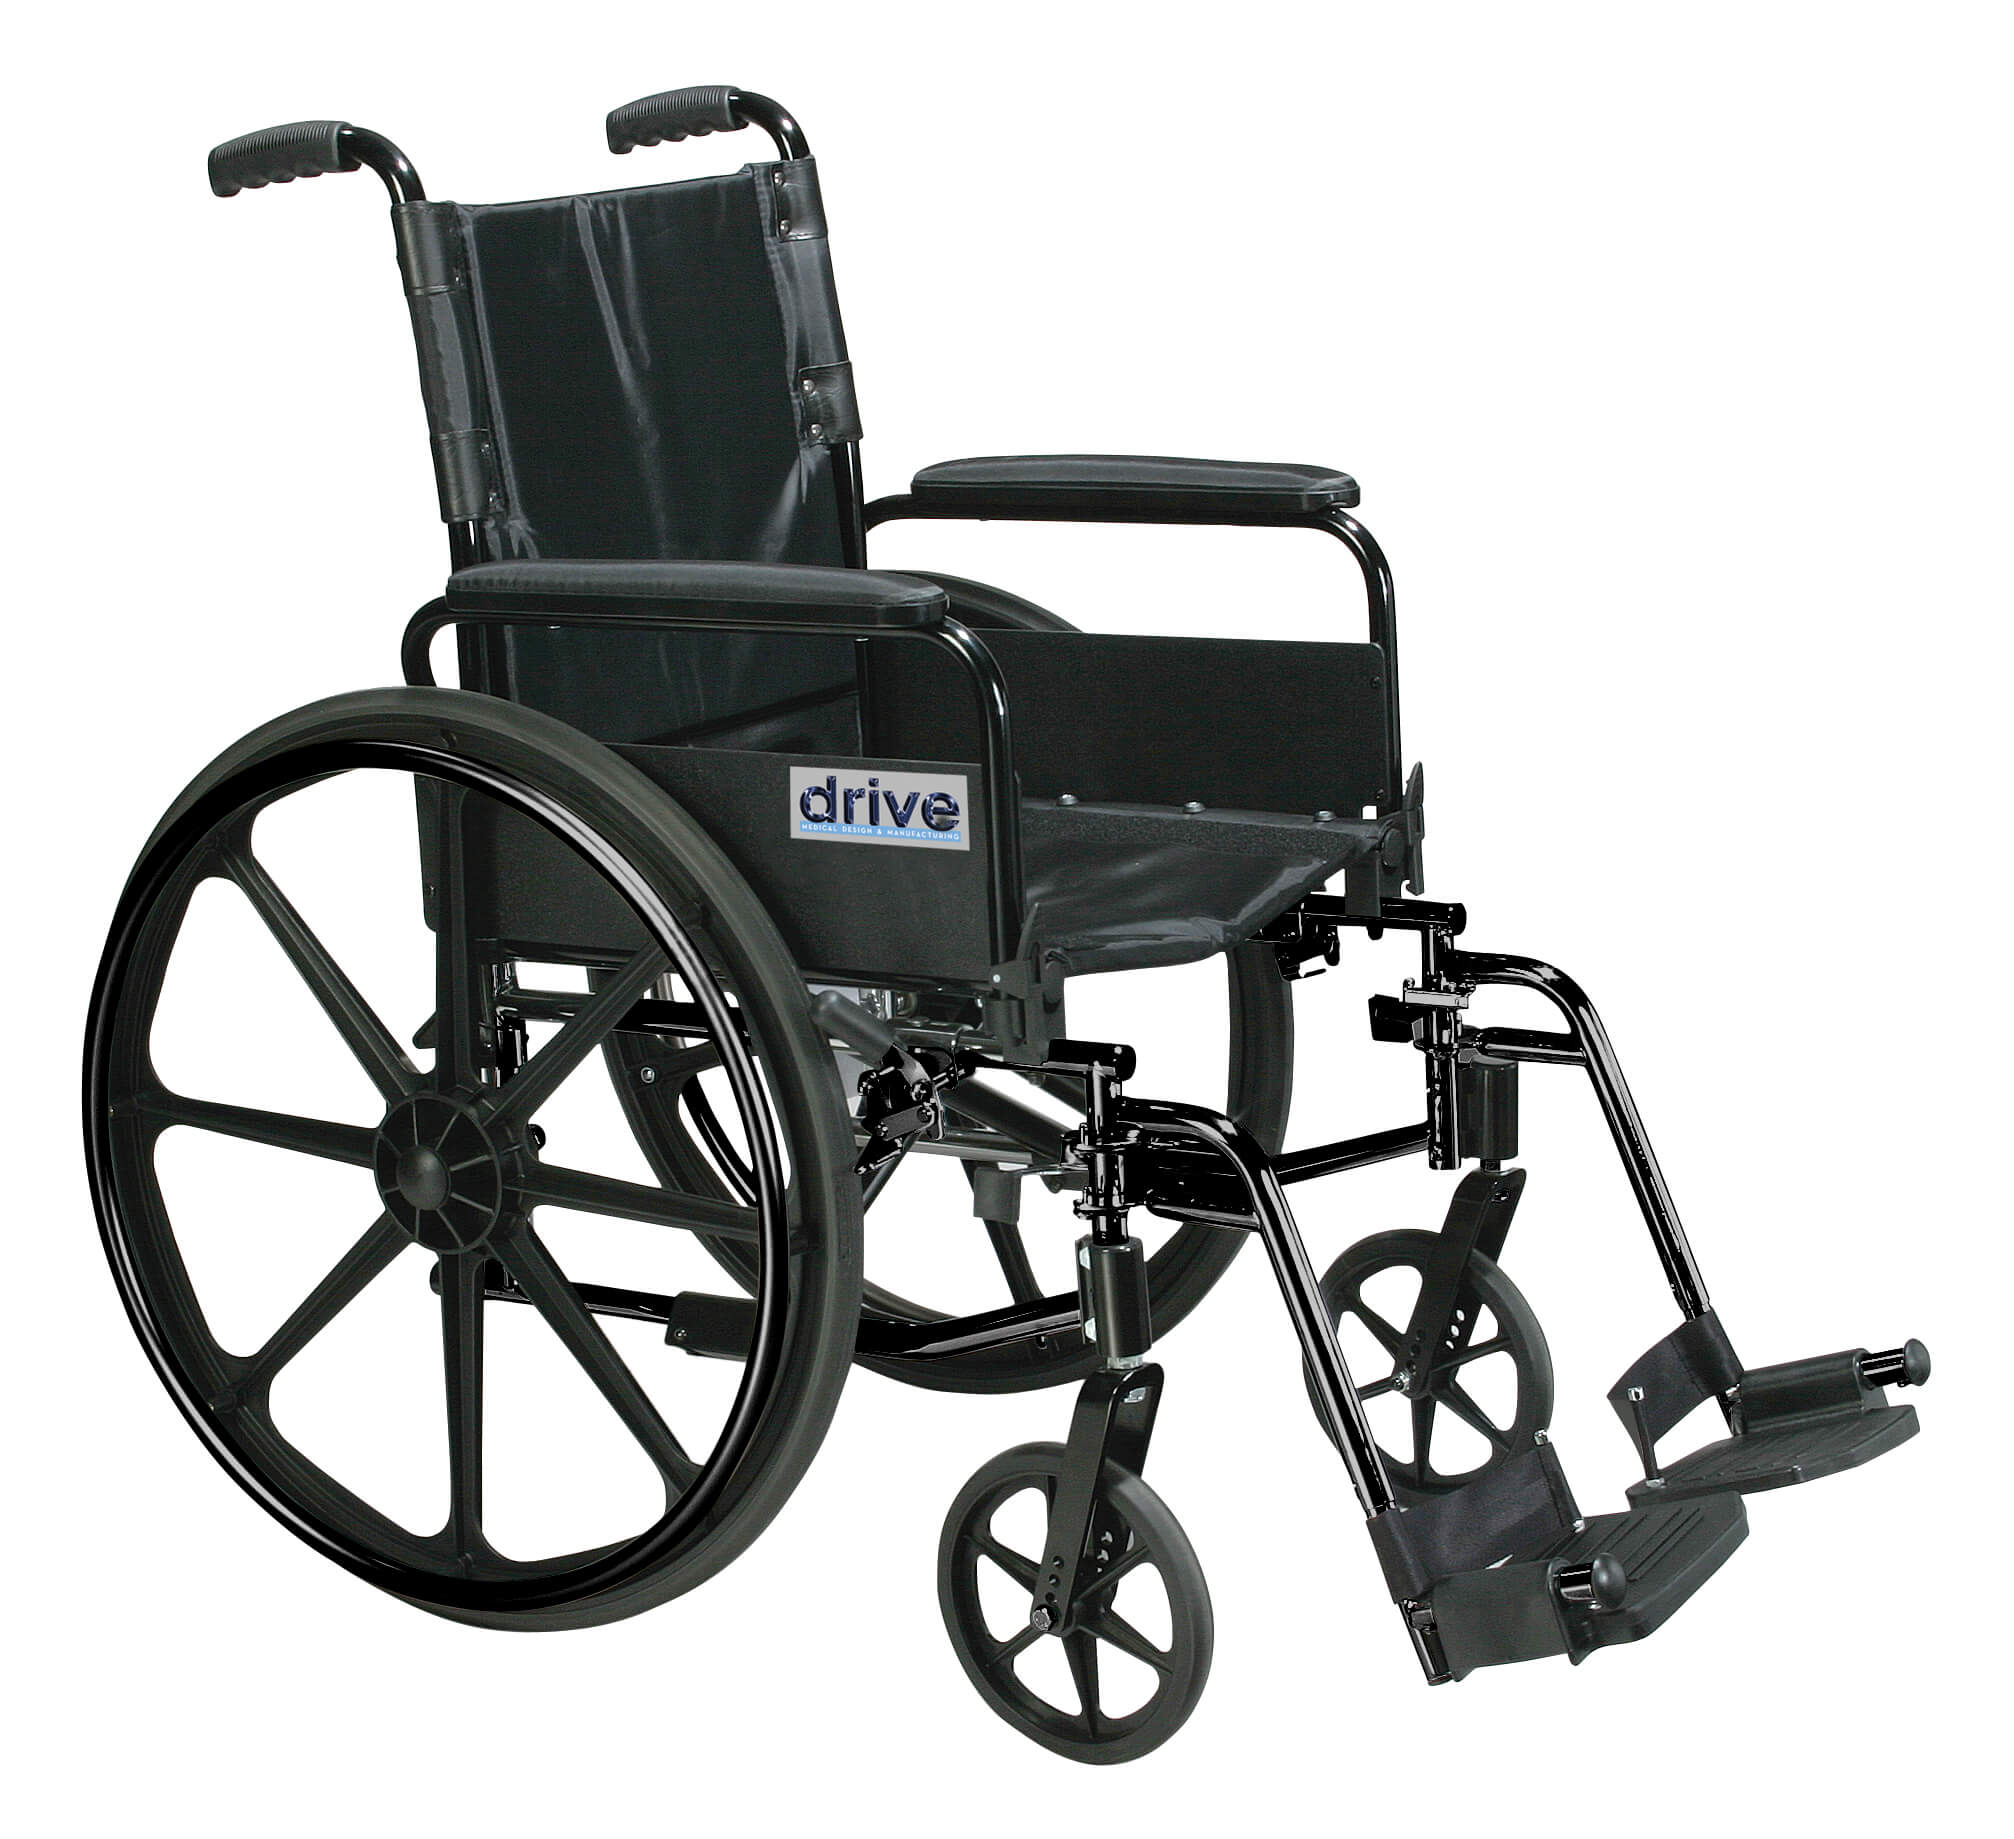 "Cirrus IV Lightweight Dual Axle Wheelchair with Adjustable Arms, Detachable Full Arms, Swing Away Footrests, 18"" Seat"